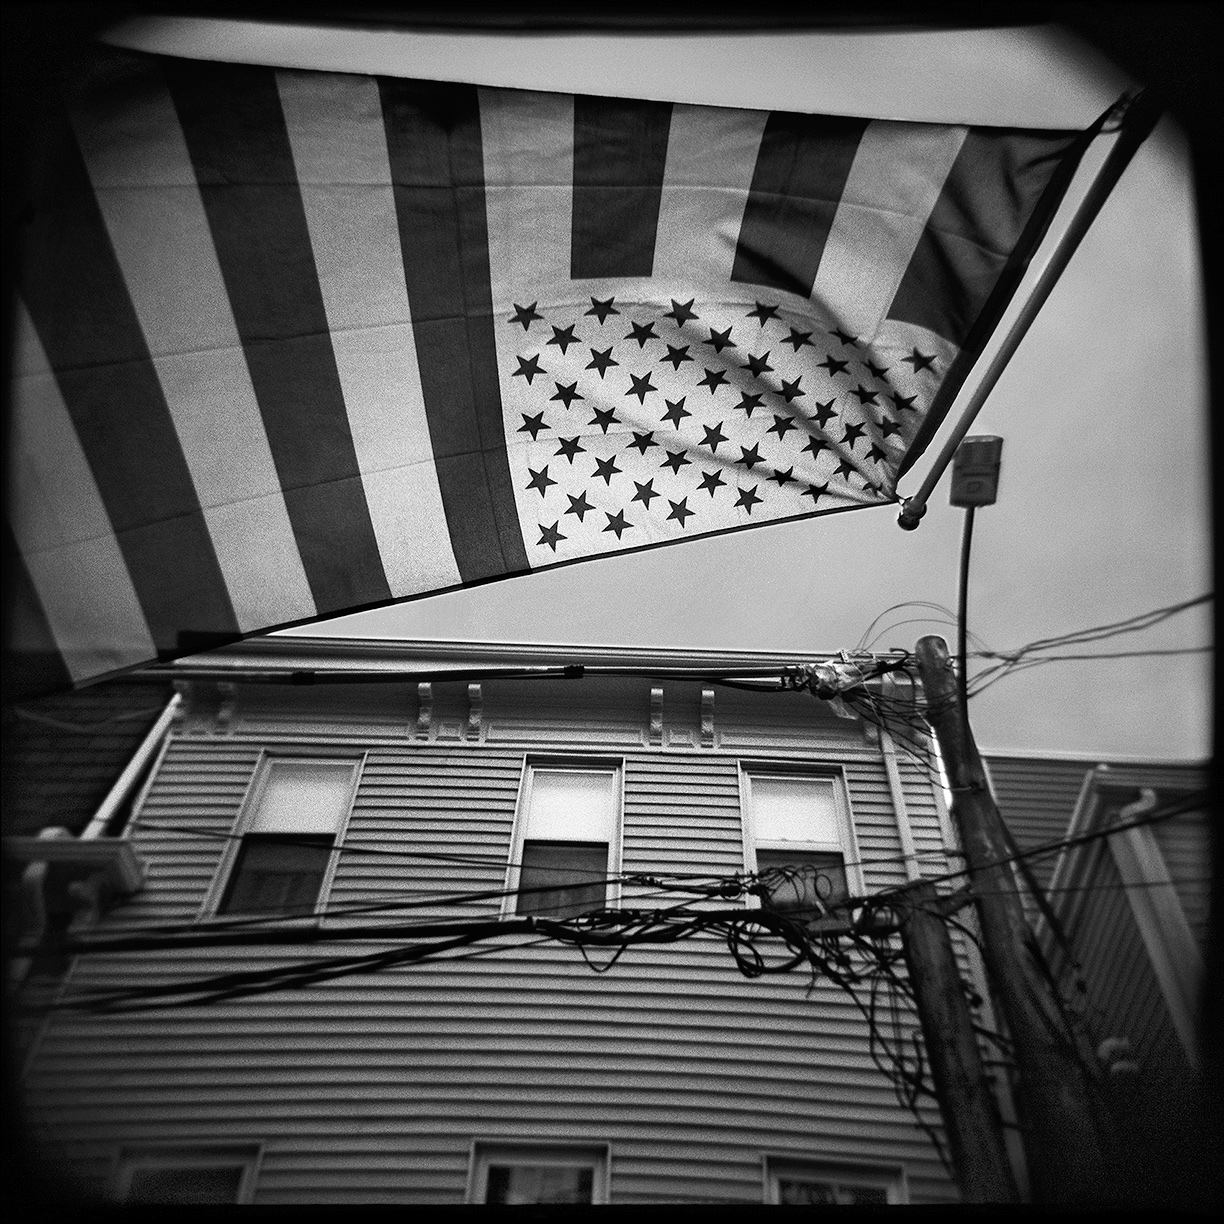 09-ThomasAlleman-OldGlory-WEBSITE-042115